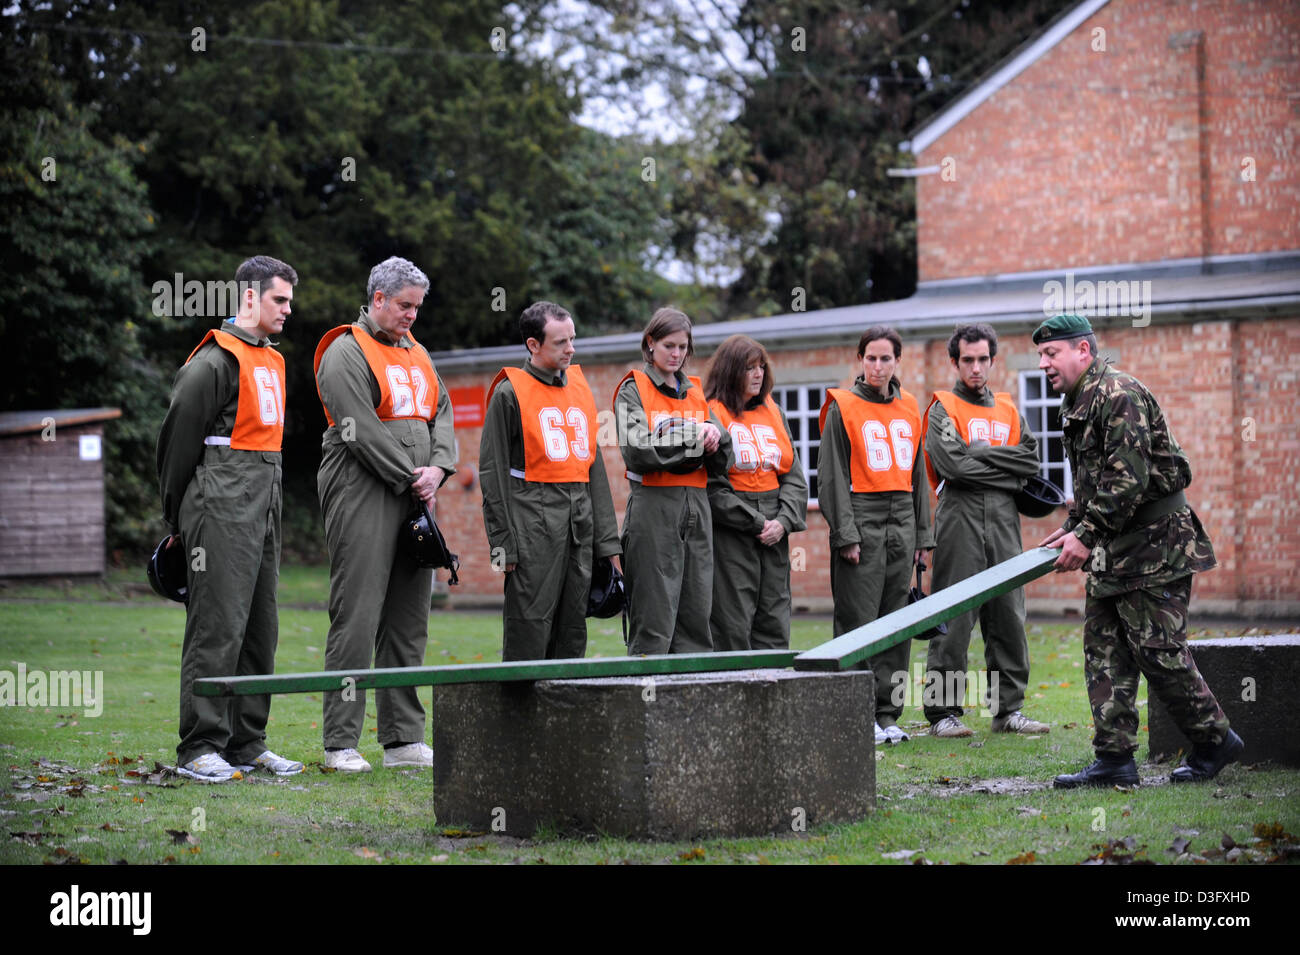 Older candidates experiencing the tasks icluding essential knots required of potential recruits at the Army Officer - Stock Image